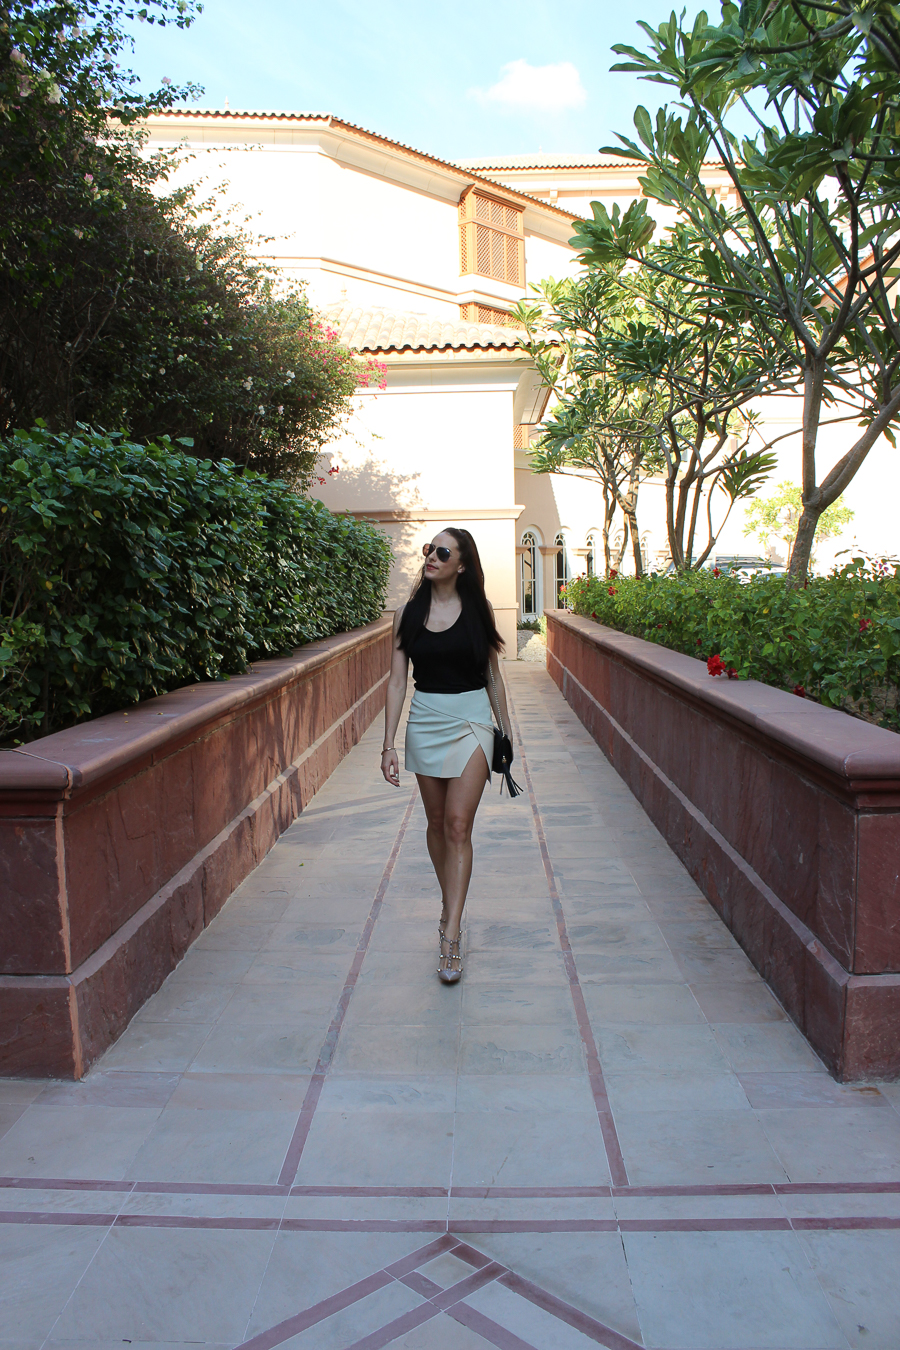 clutch and carry on - uk travel blogger - dubai travel blog - sabrina chakici -_-92